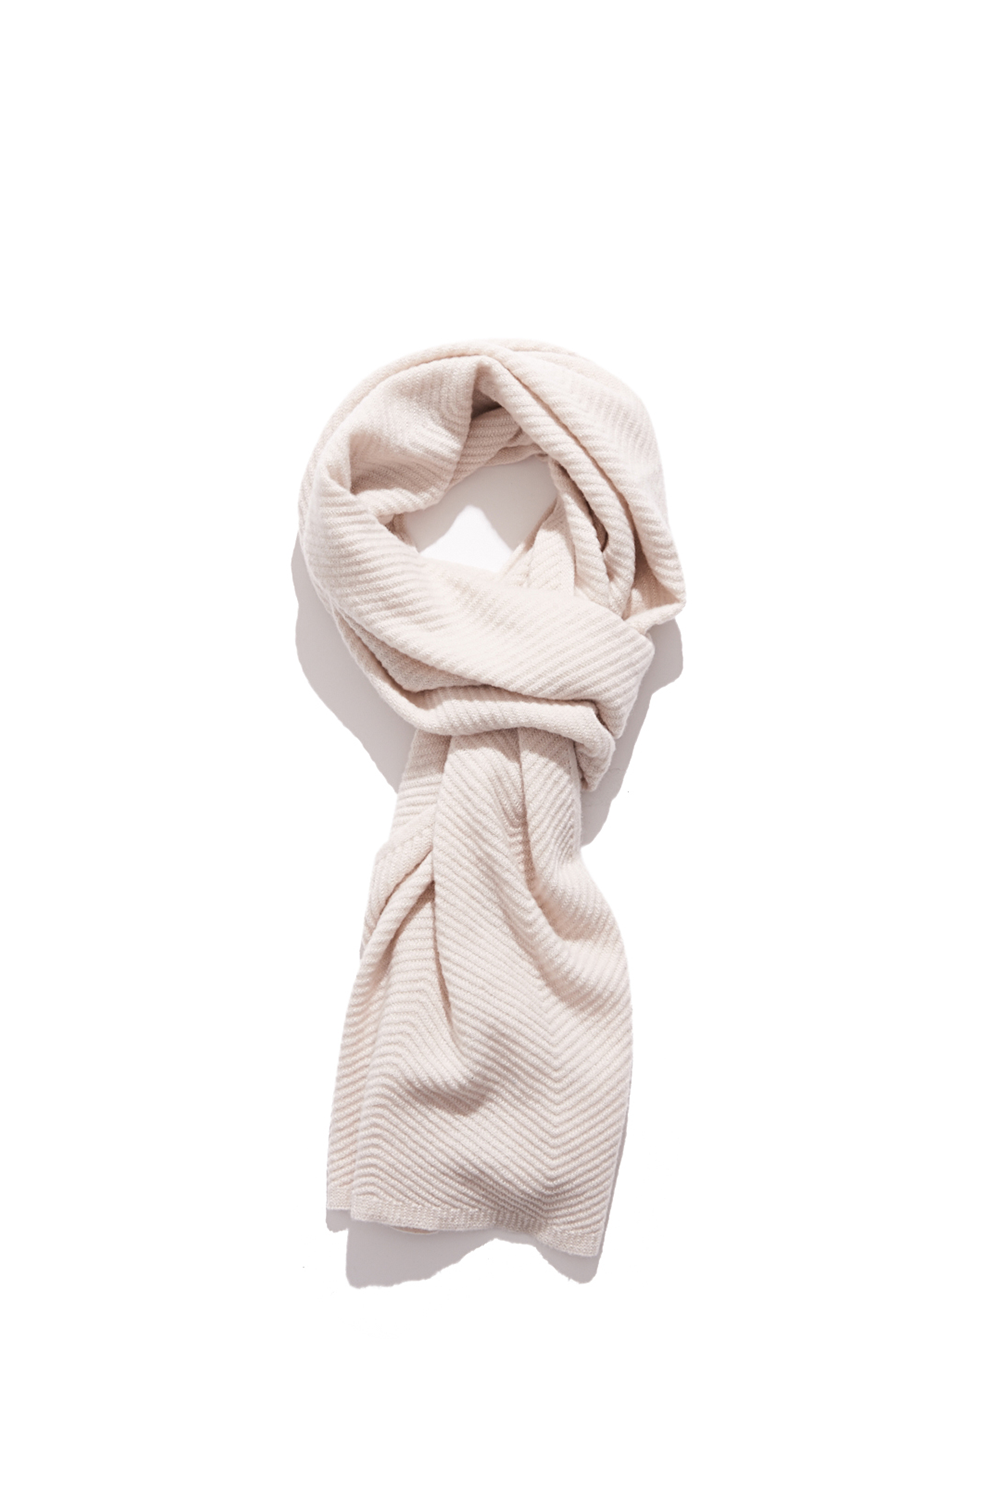 Premium pure cashmere100 whole-garment knitting shawl and scarf-Cream ivory (품절)